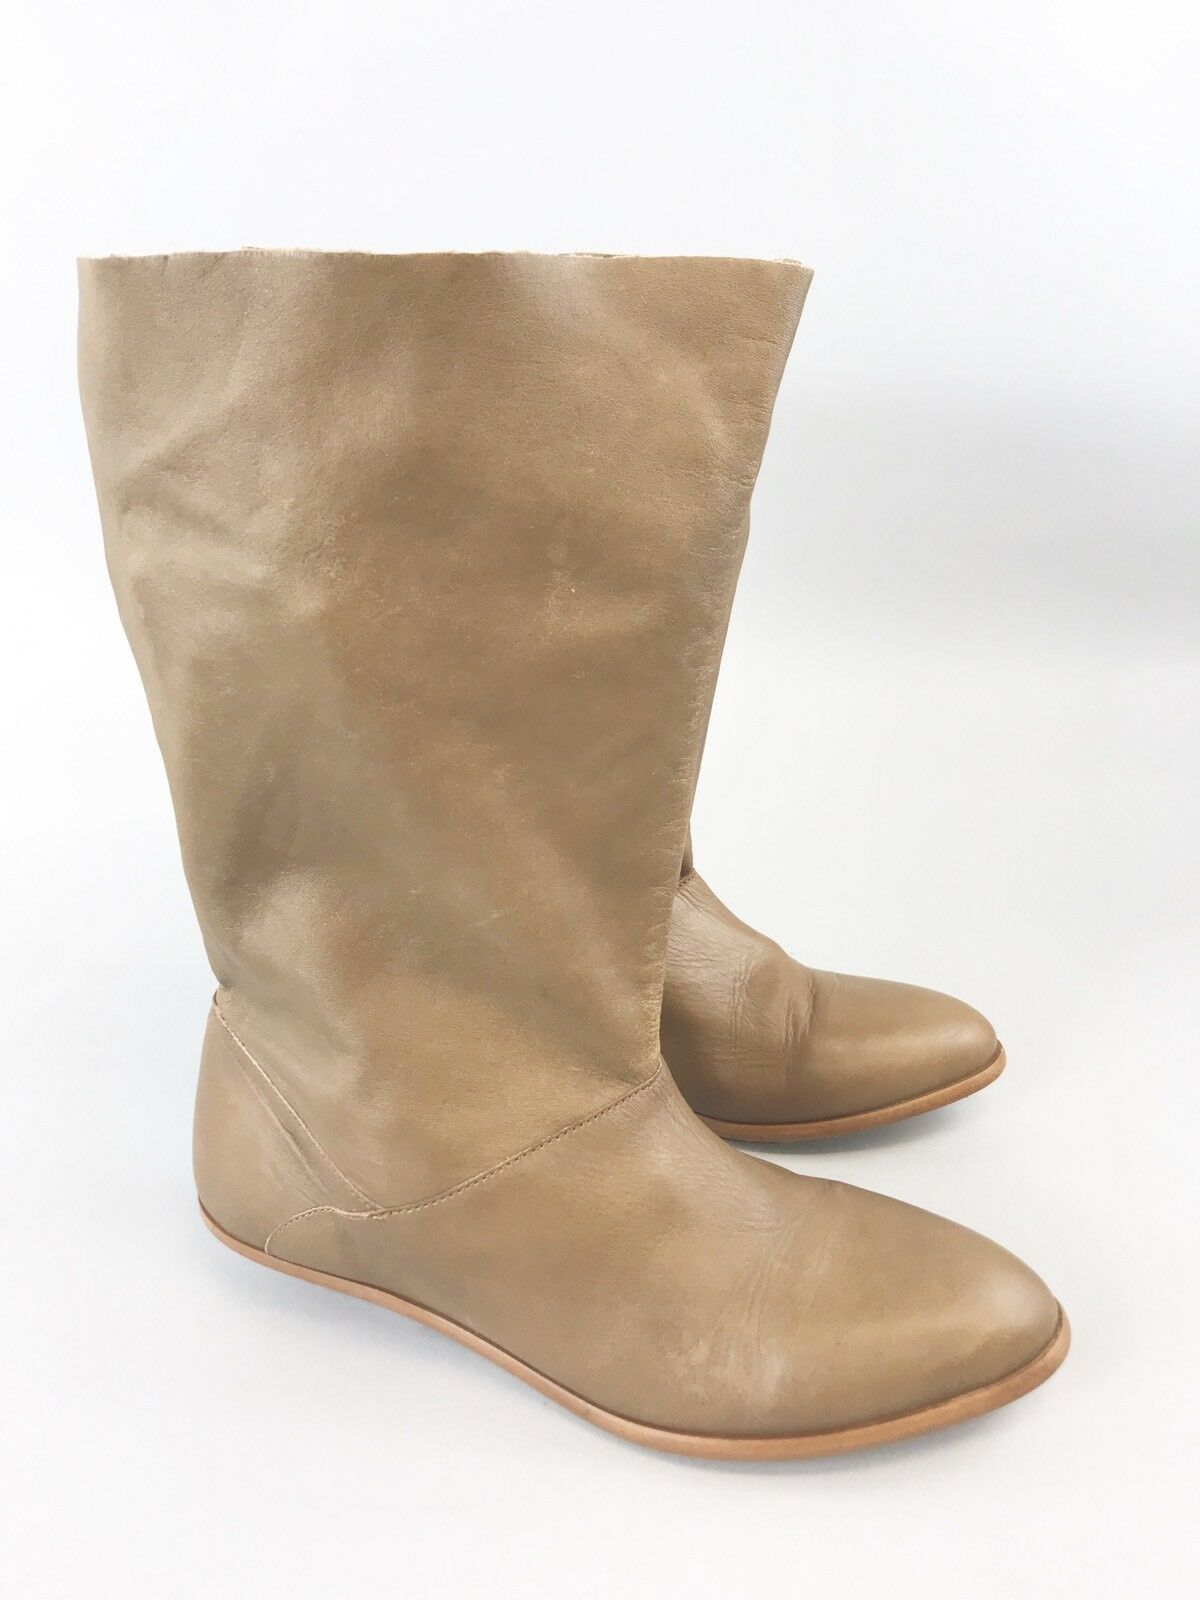 Zara ladies brown soft leather ankles pull Ons winter boots size UK4 Eu37 Wide